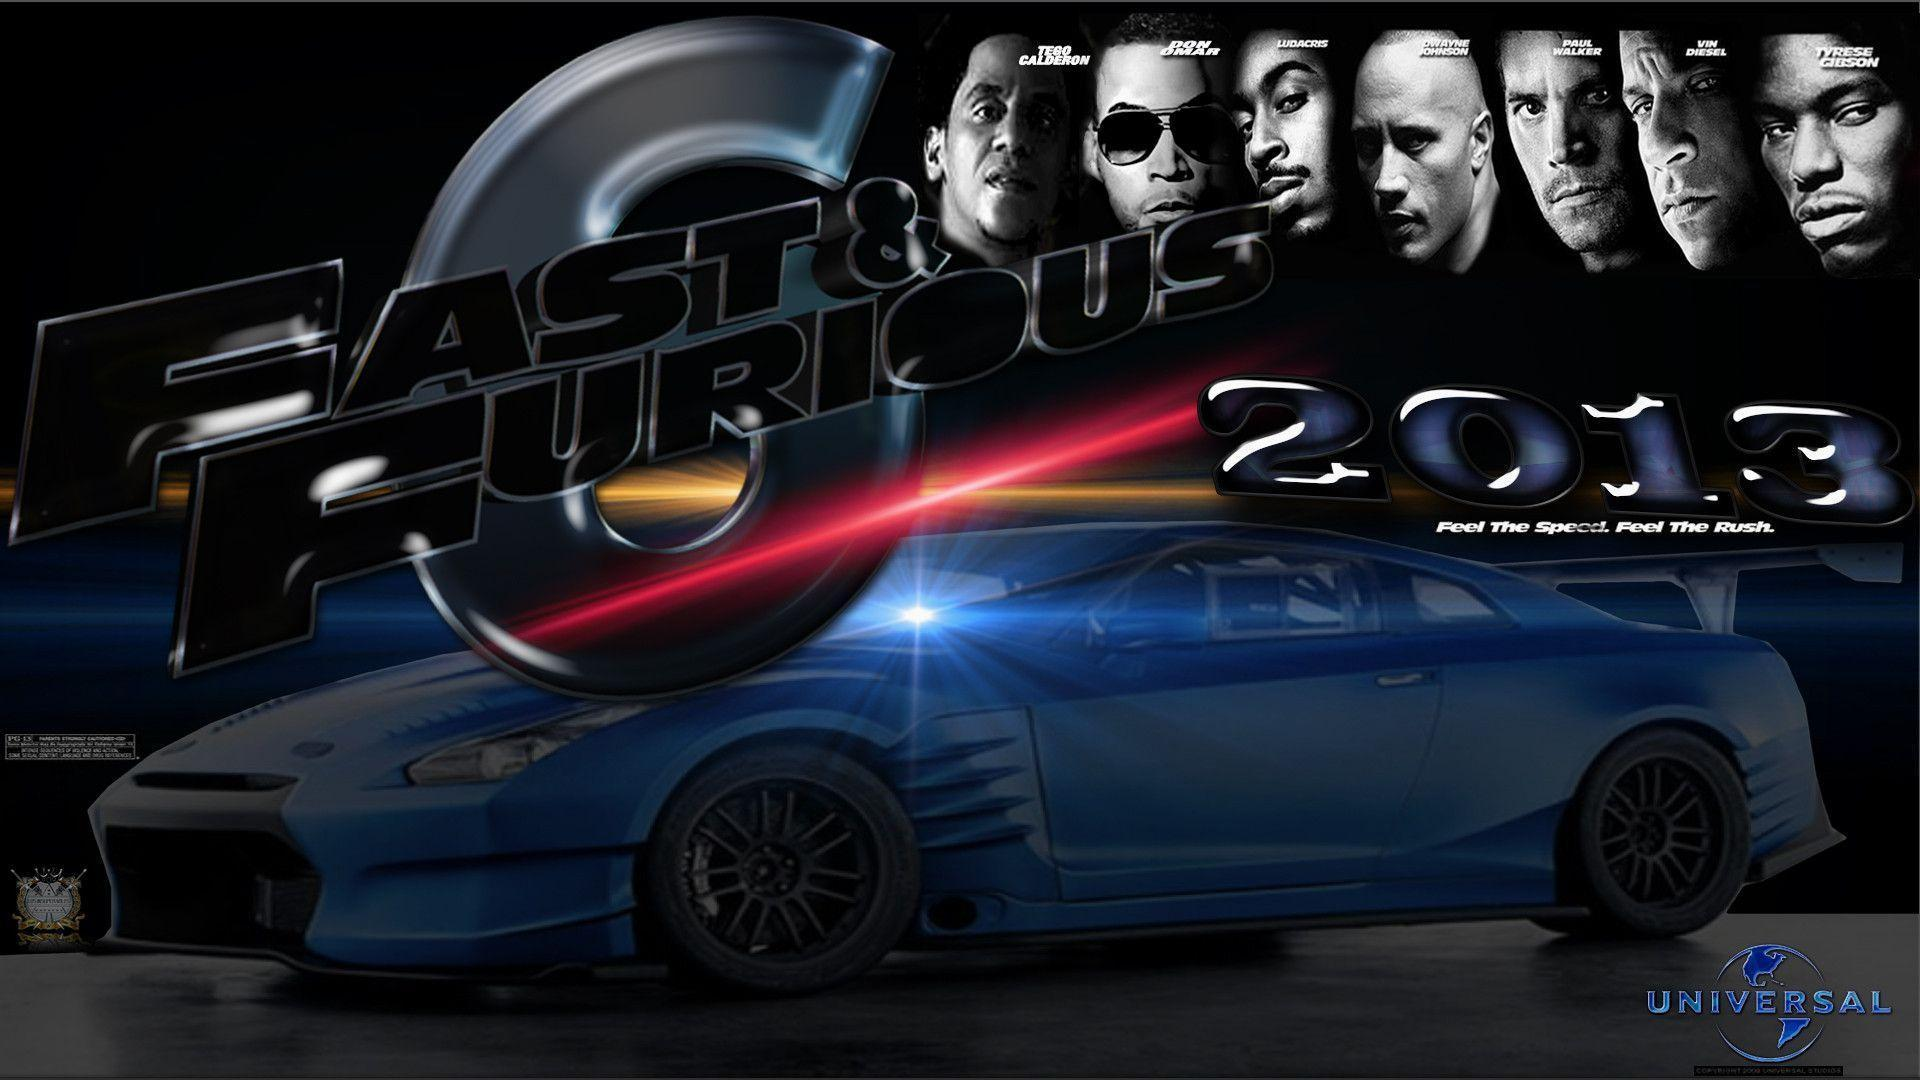 Fast And Furious Cars Wallpaper Free Download Fast And Furious Wallpapers Wallpaper Cave